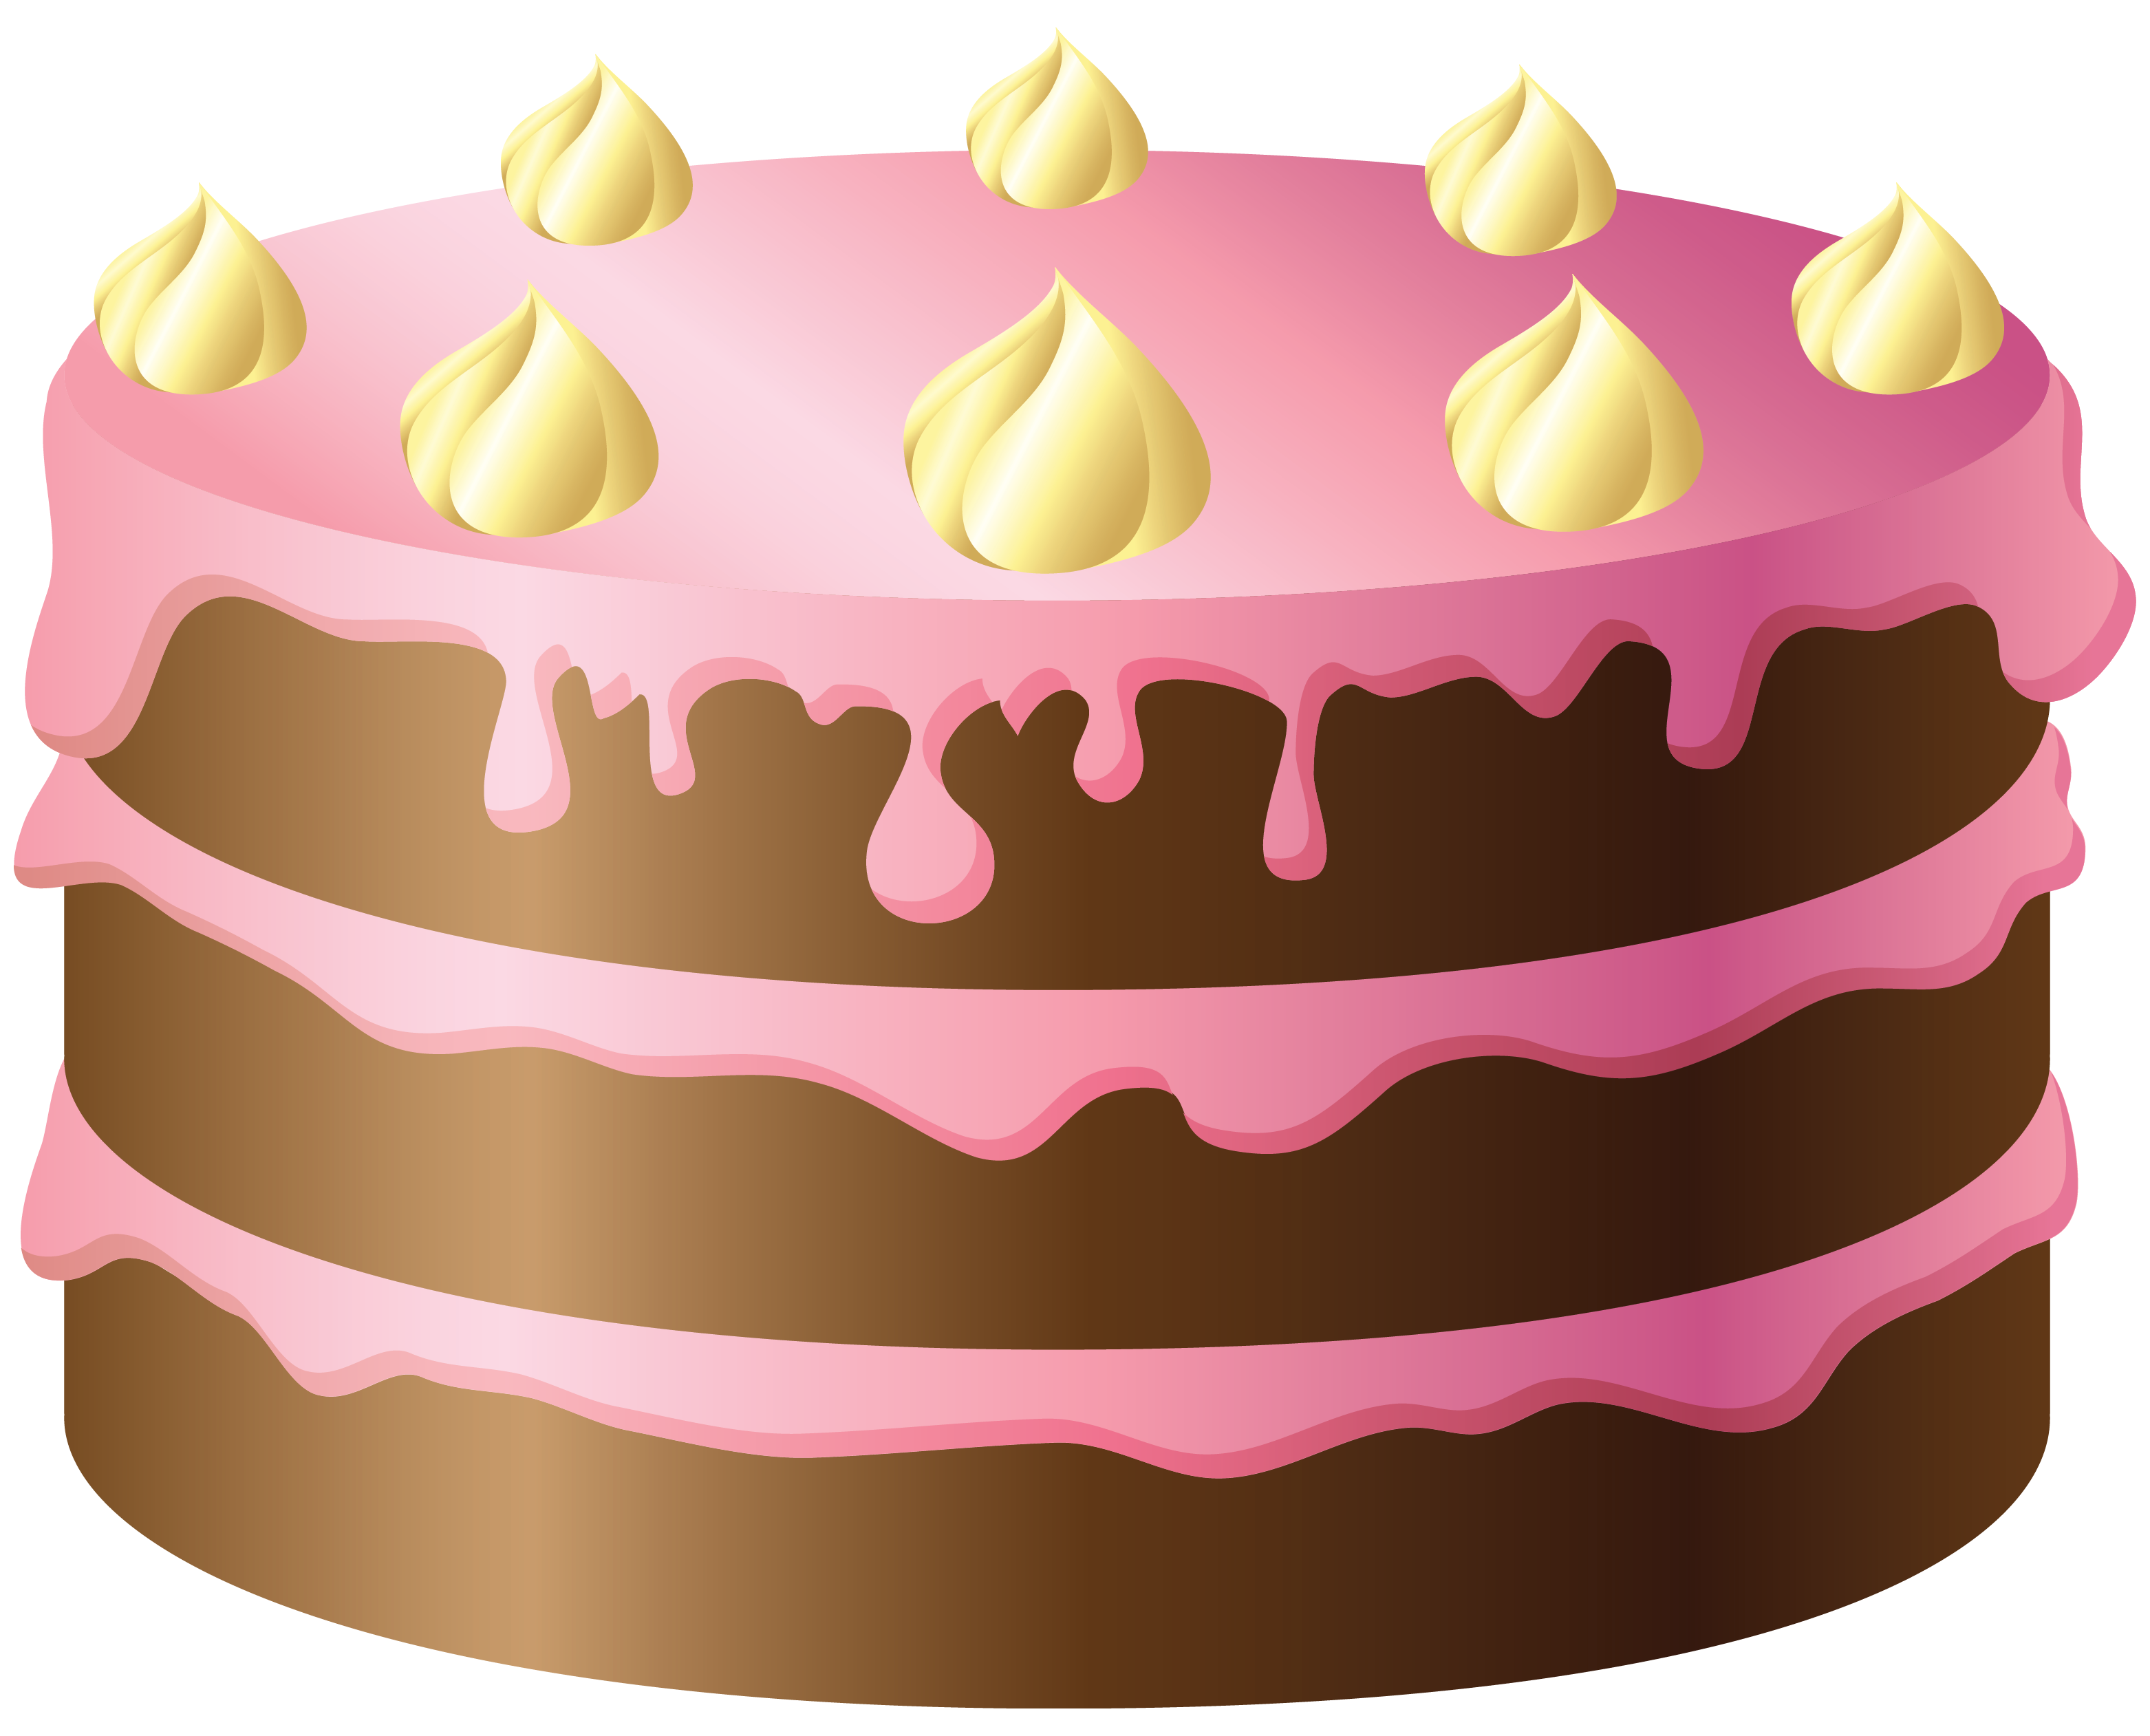 svg black and white stock Chocolate cake with pink. Bakery clipart baking class.